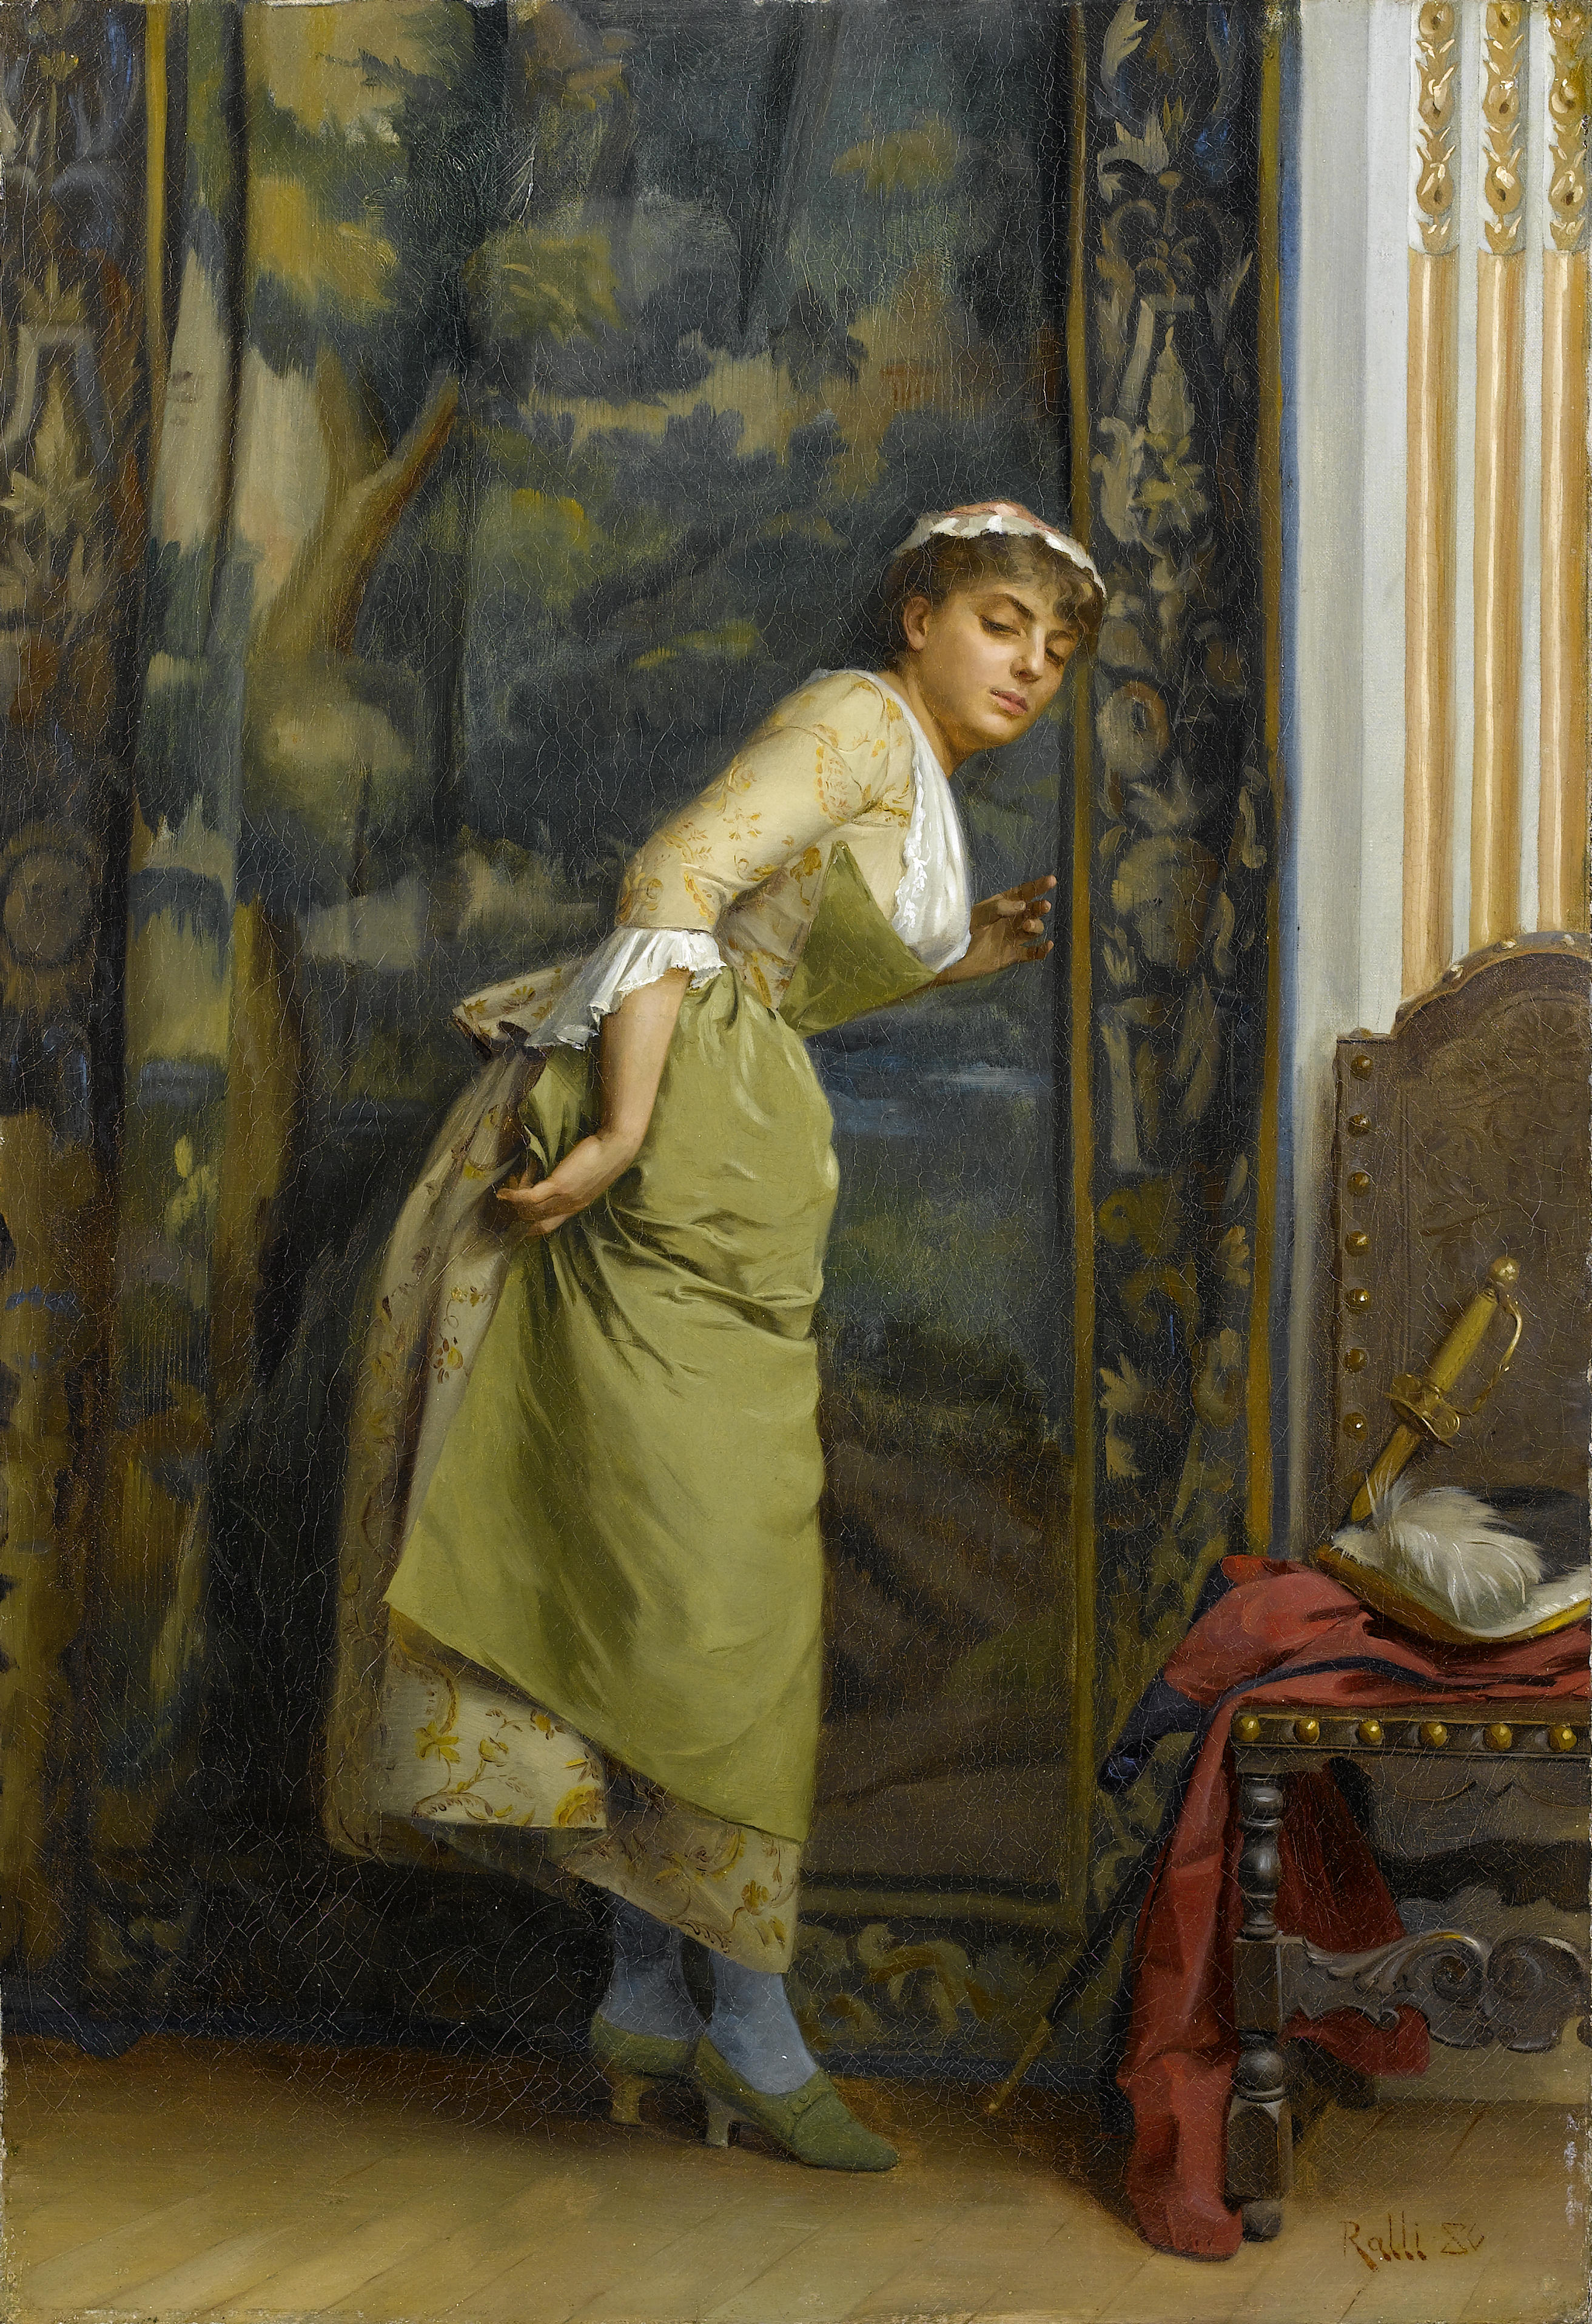 Théodore_Jacques_Ralli_Eavesdropping_1880